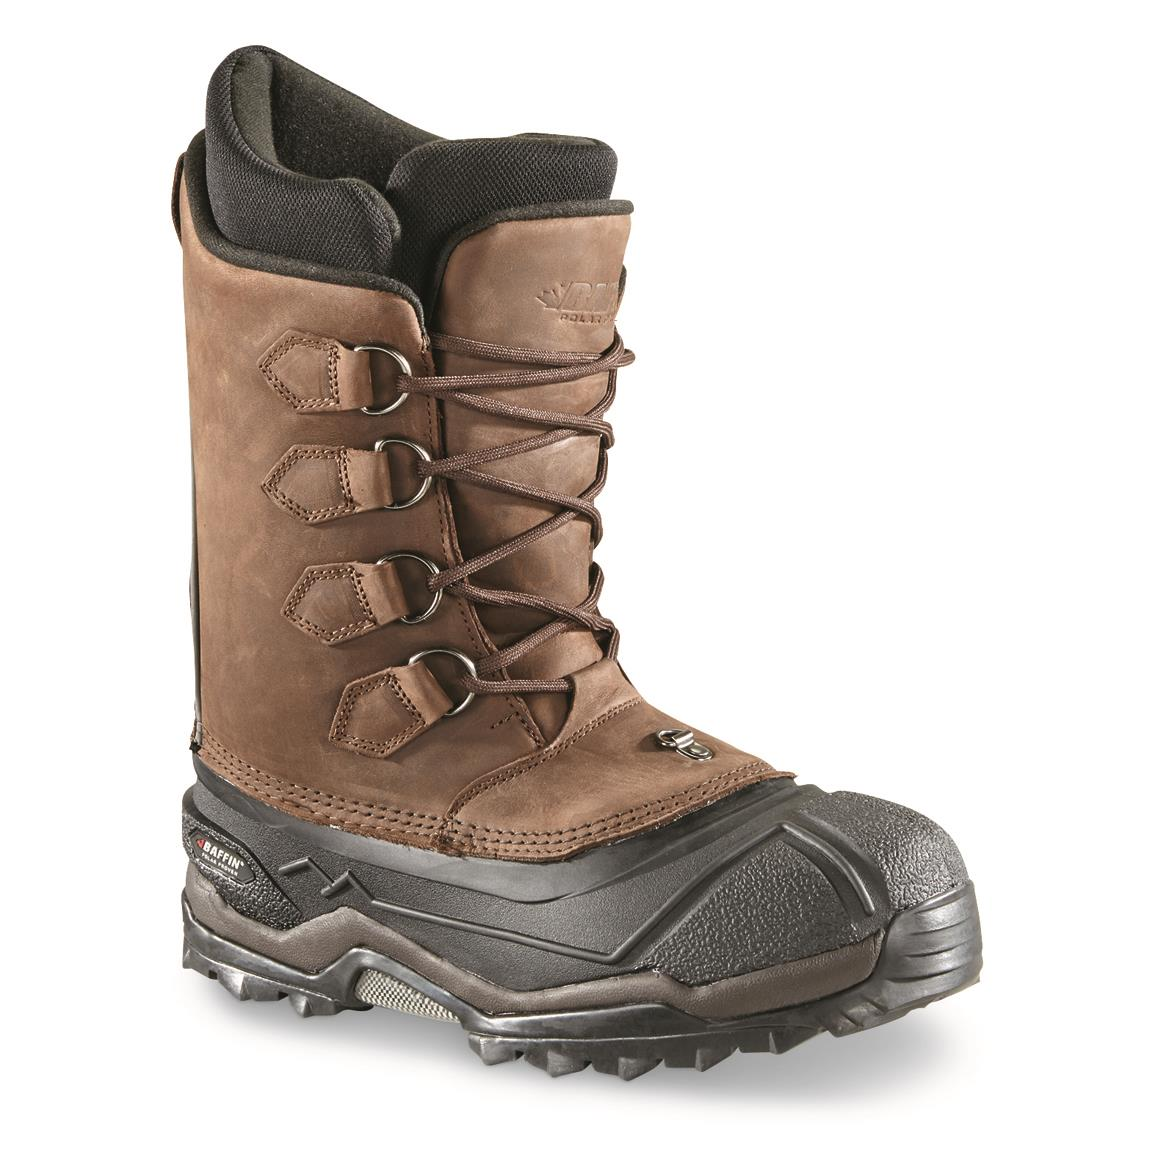 Baffin Men's Control Max Insulated Waterproof Boots, Brown